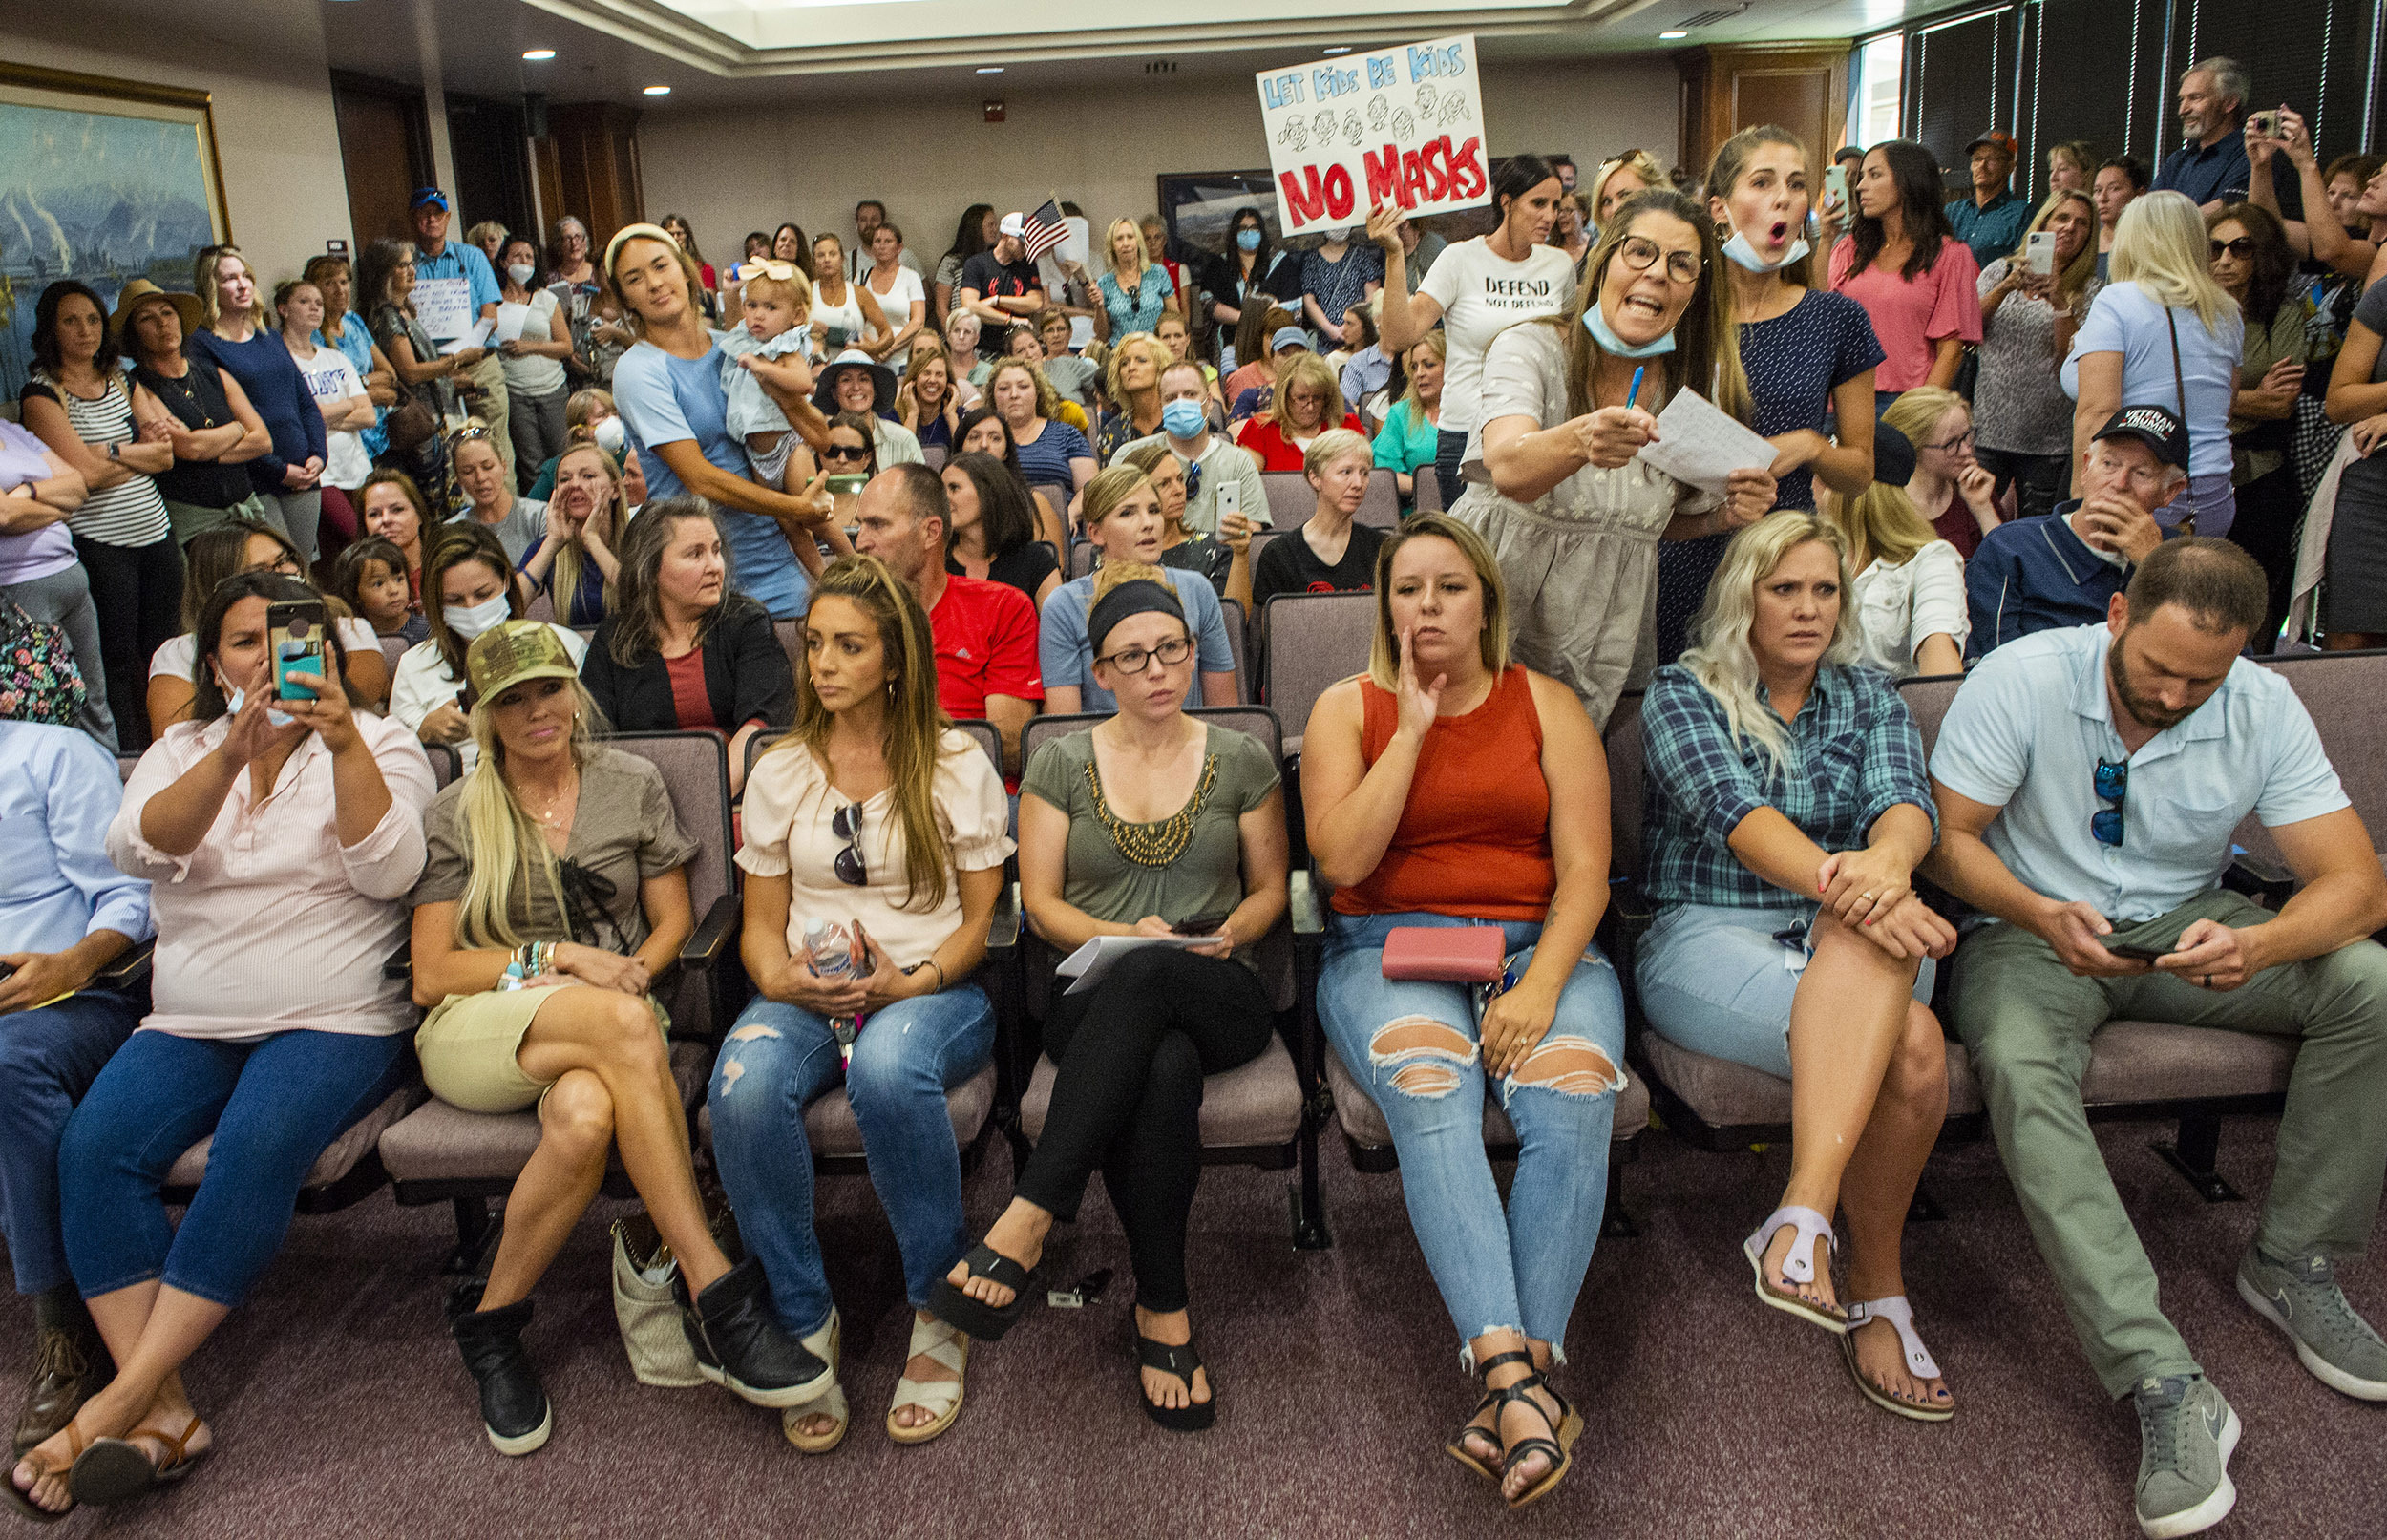 Meeting On Masks Immediately Cancelled After Room Fills With People Not Wearing Masks